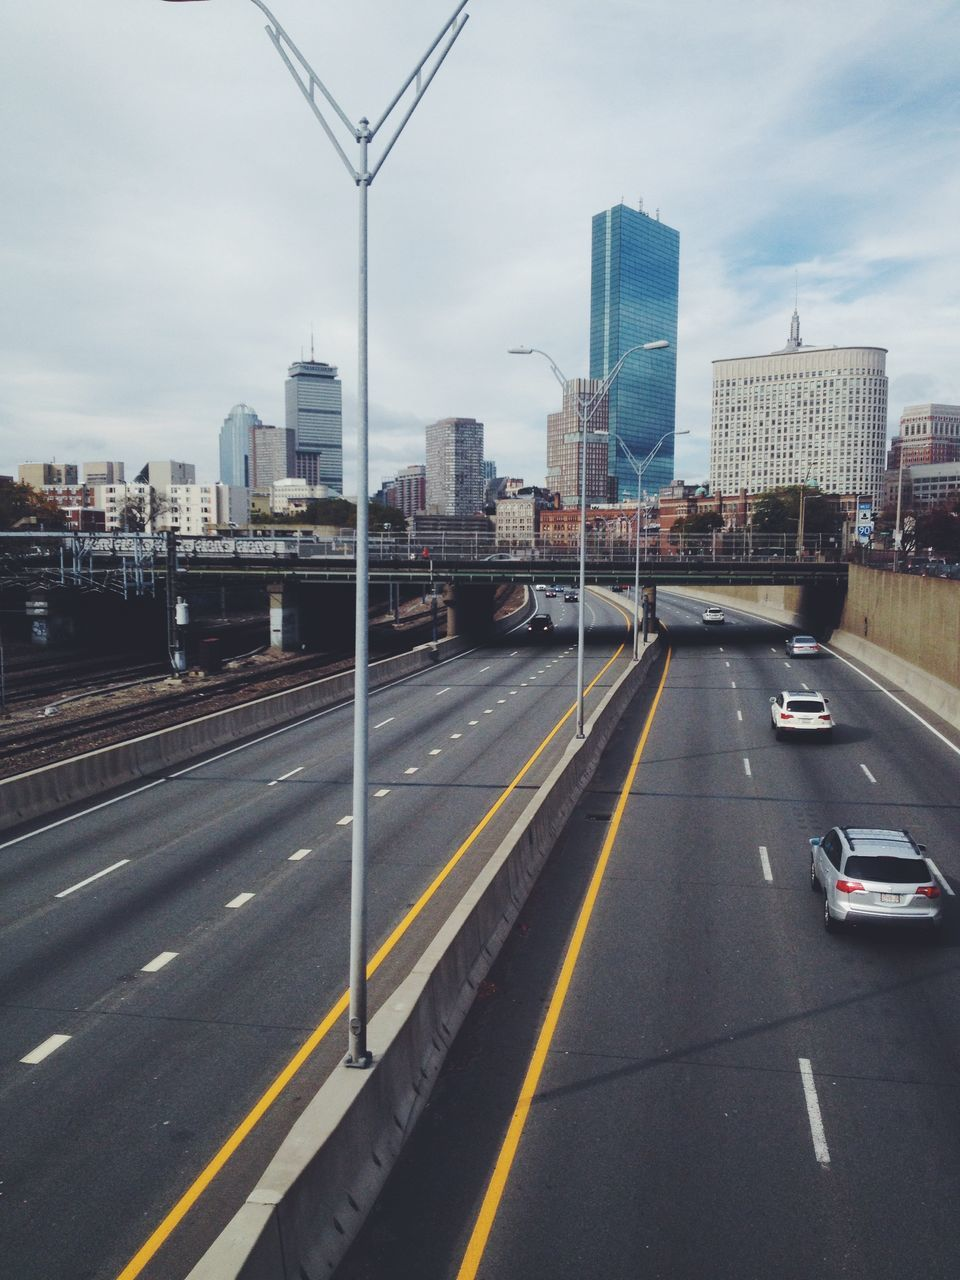 city, transportation, road, architecture, skyscraper, building exterior, car, built structure, sky, traffic, city life, cityscape, speed, travel destinations, mode of transport, outdoors, urban skyline, land vehicle, motion, tall, day, no people